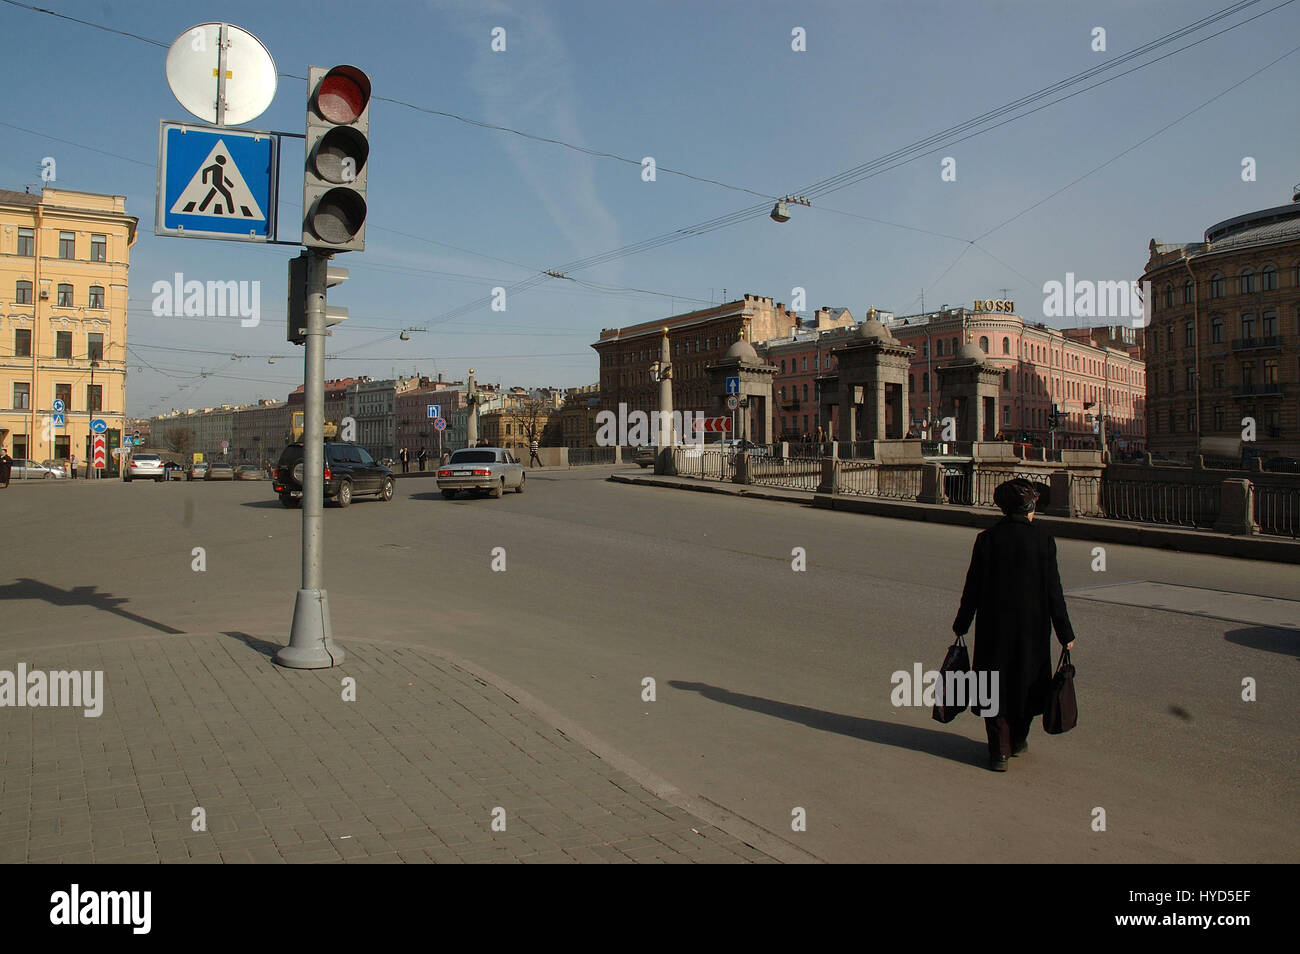 Detail from the streets of Sankt-Peterburg, Russia - Stock Image